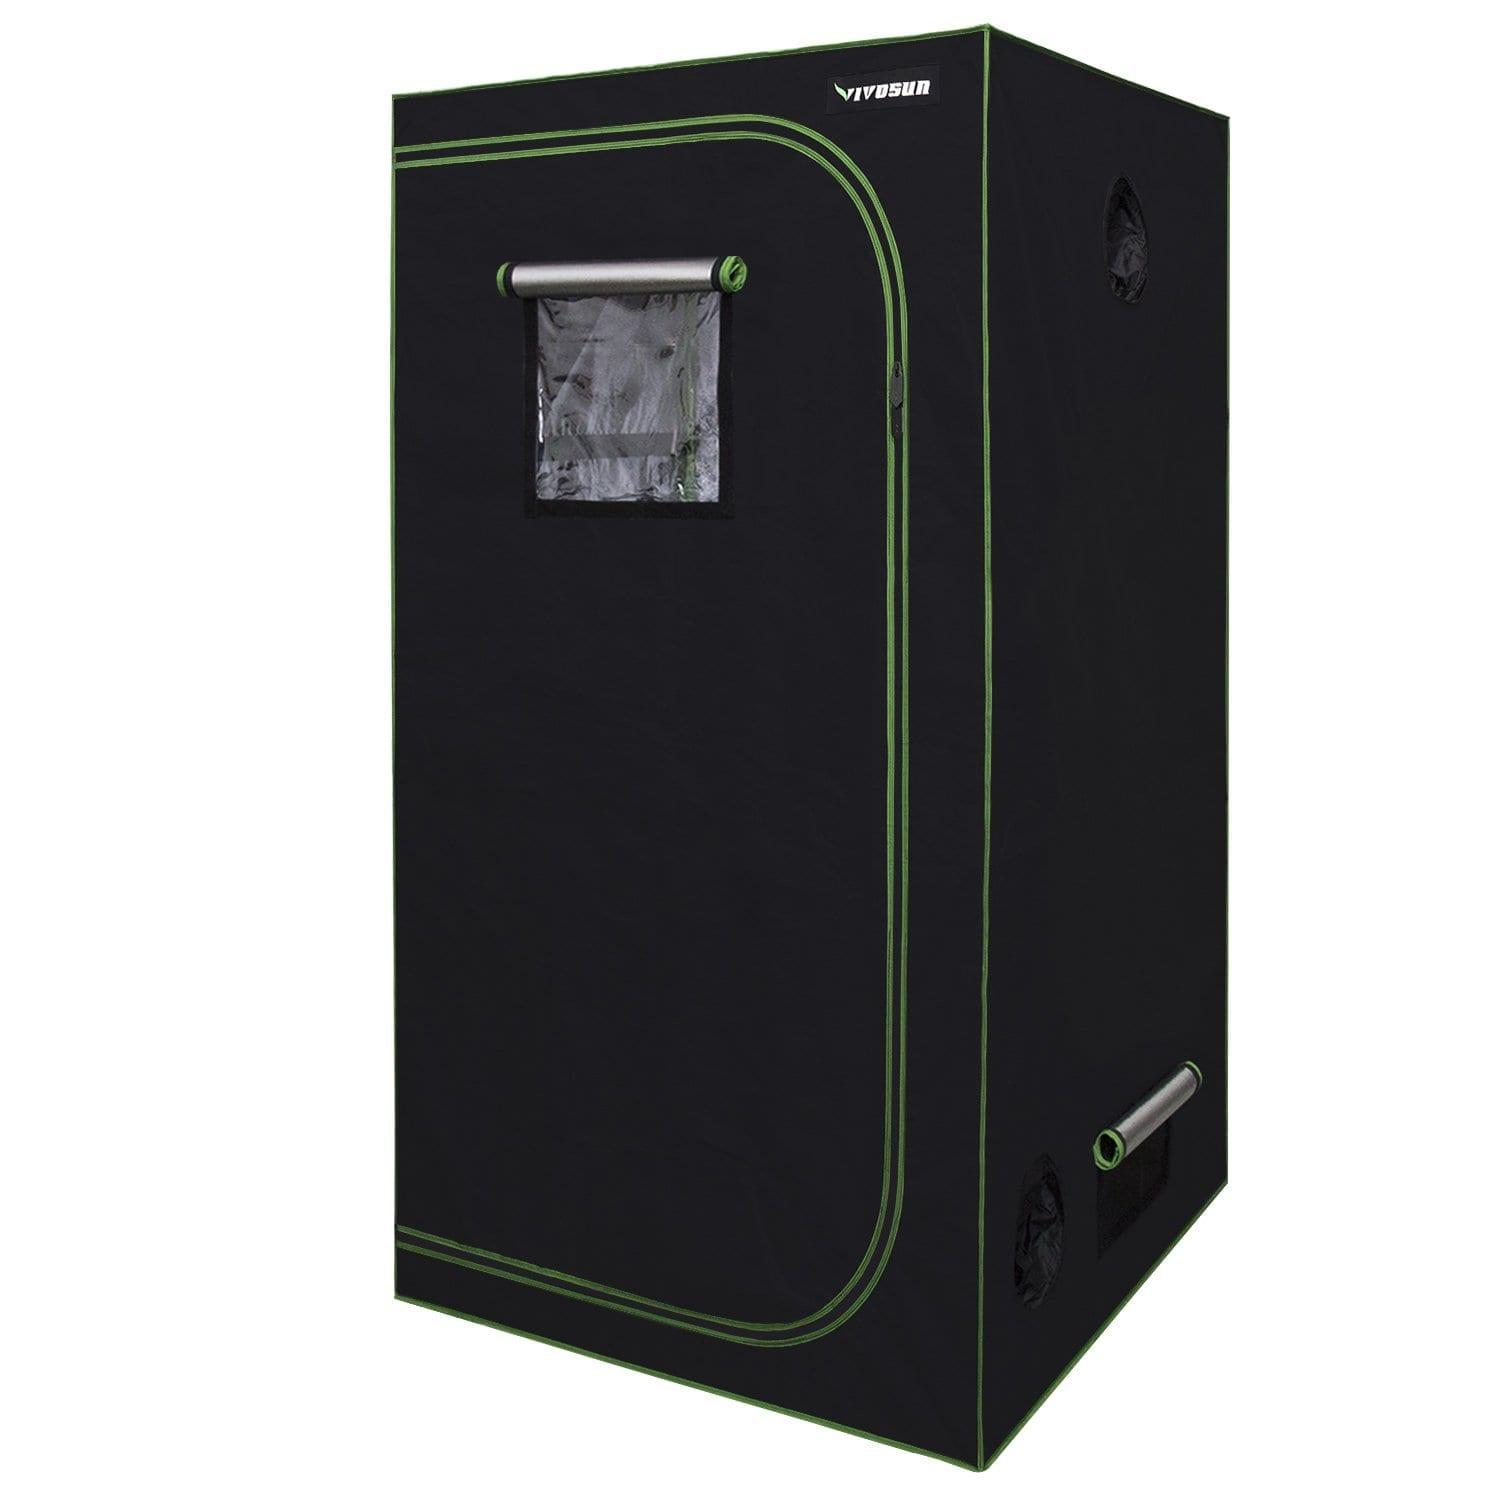 Top 6 Best 3x3 Grow Tent of 2019 - Reviews